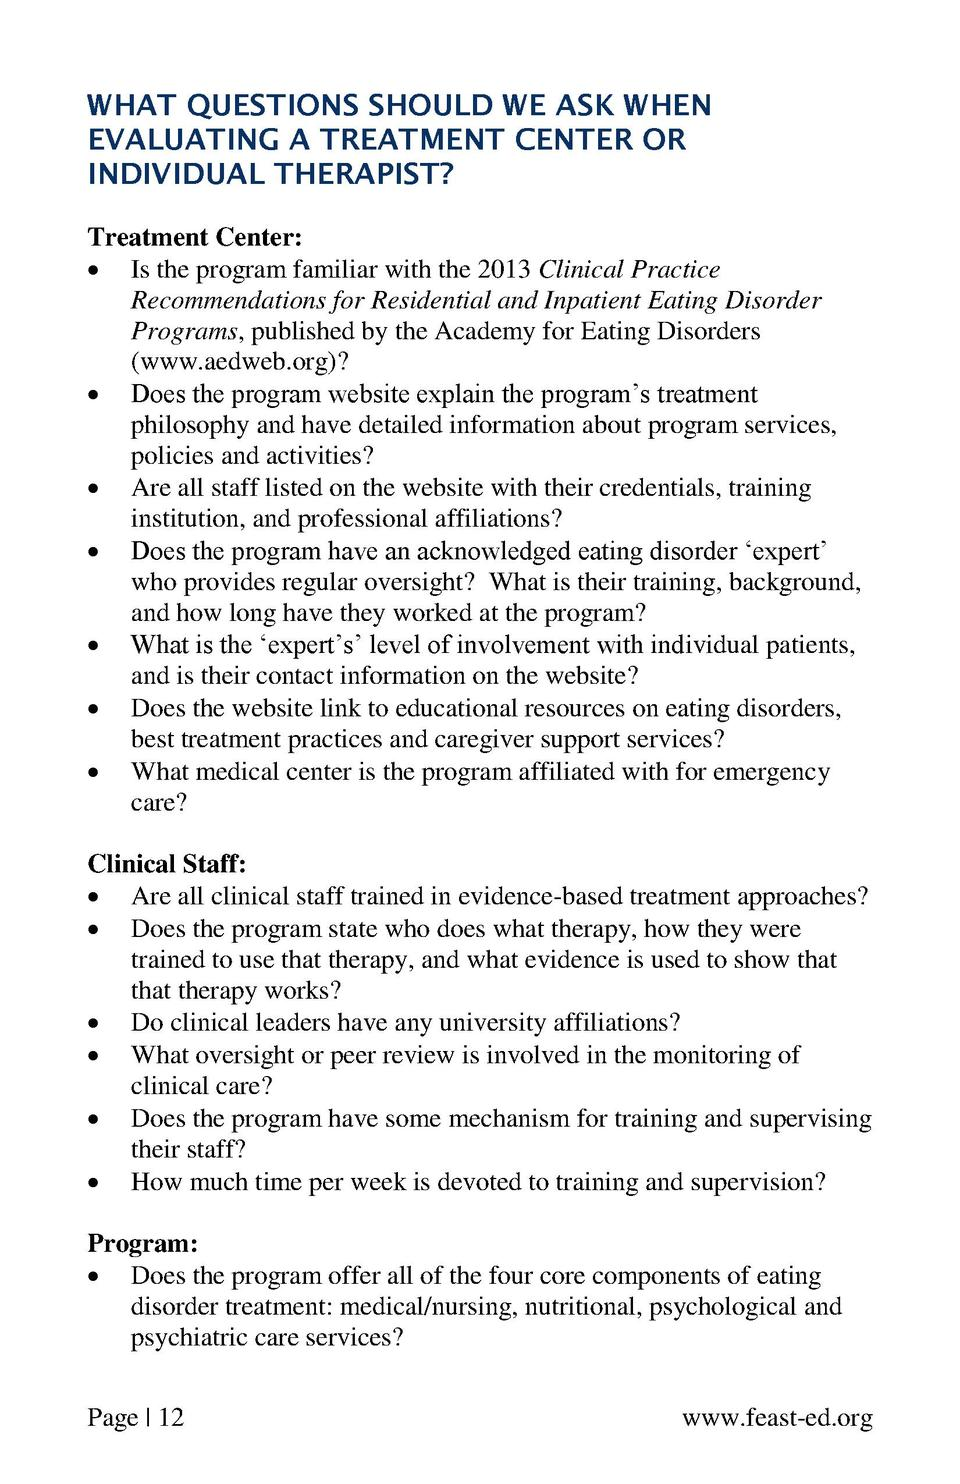 WHAT QUESTIONS SHOULD WE ASK WHEN EVALUATING A TREATMENT CENTER OR INDIVIDUAL THERAPIST  Treatment Center      Is the prog...